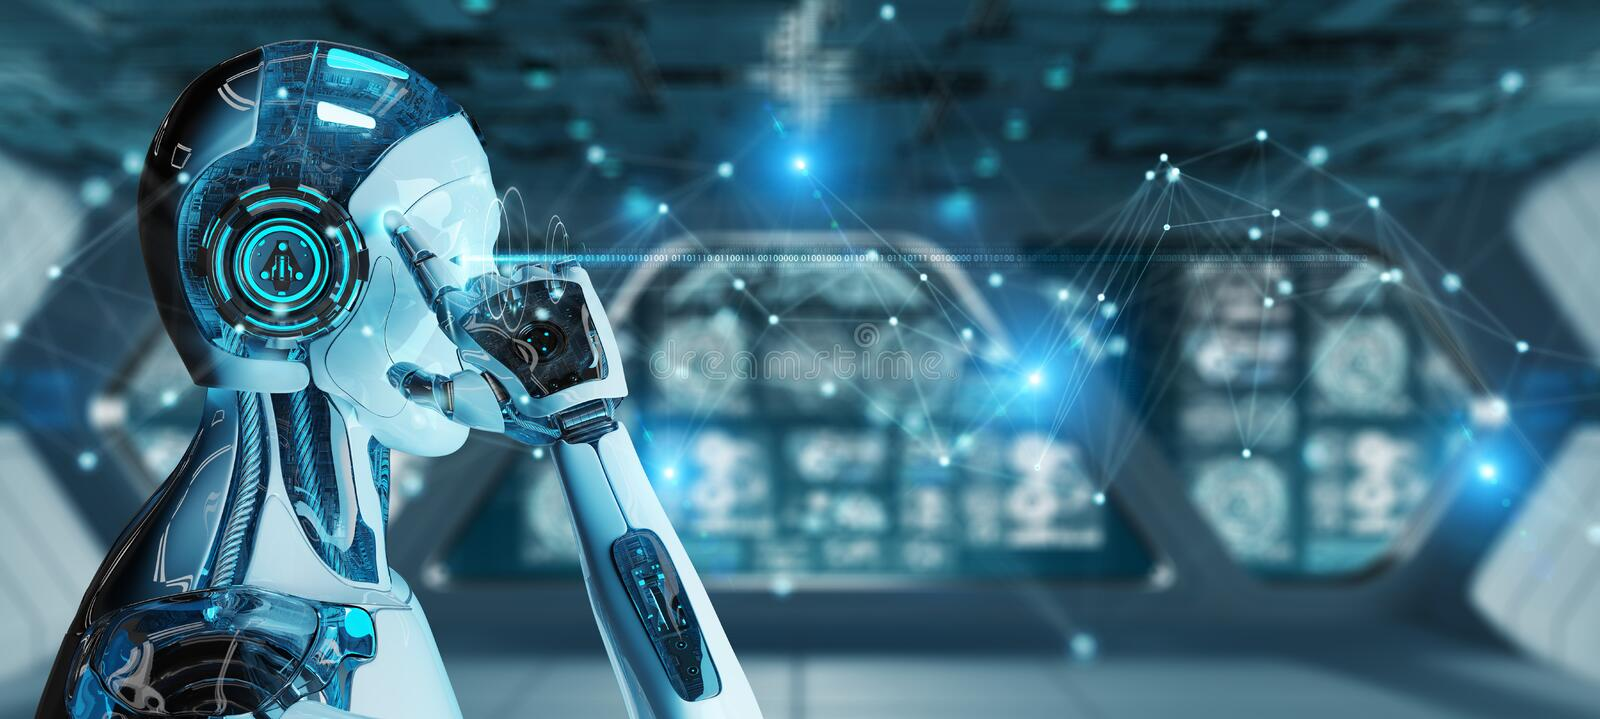 White man robot using digital network connection 3D rendering stock illustration